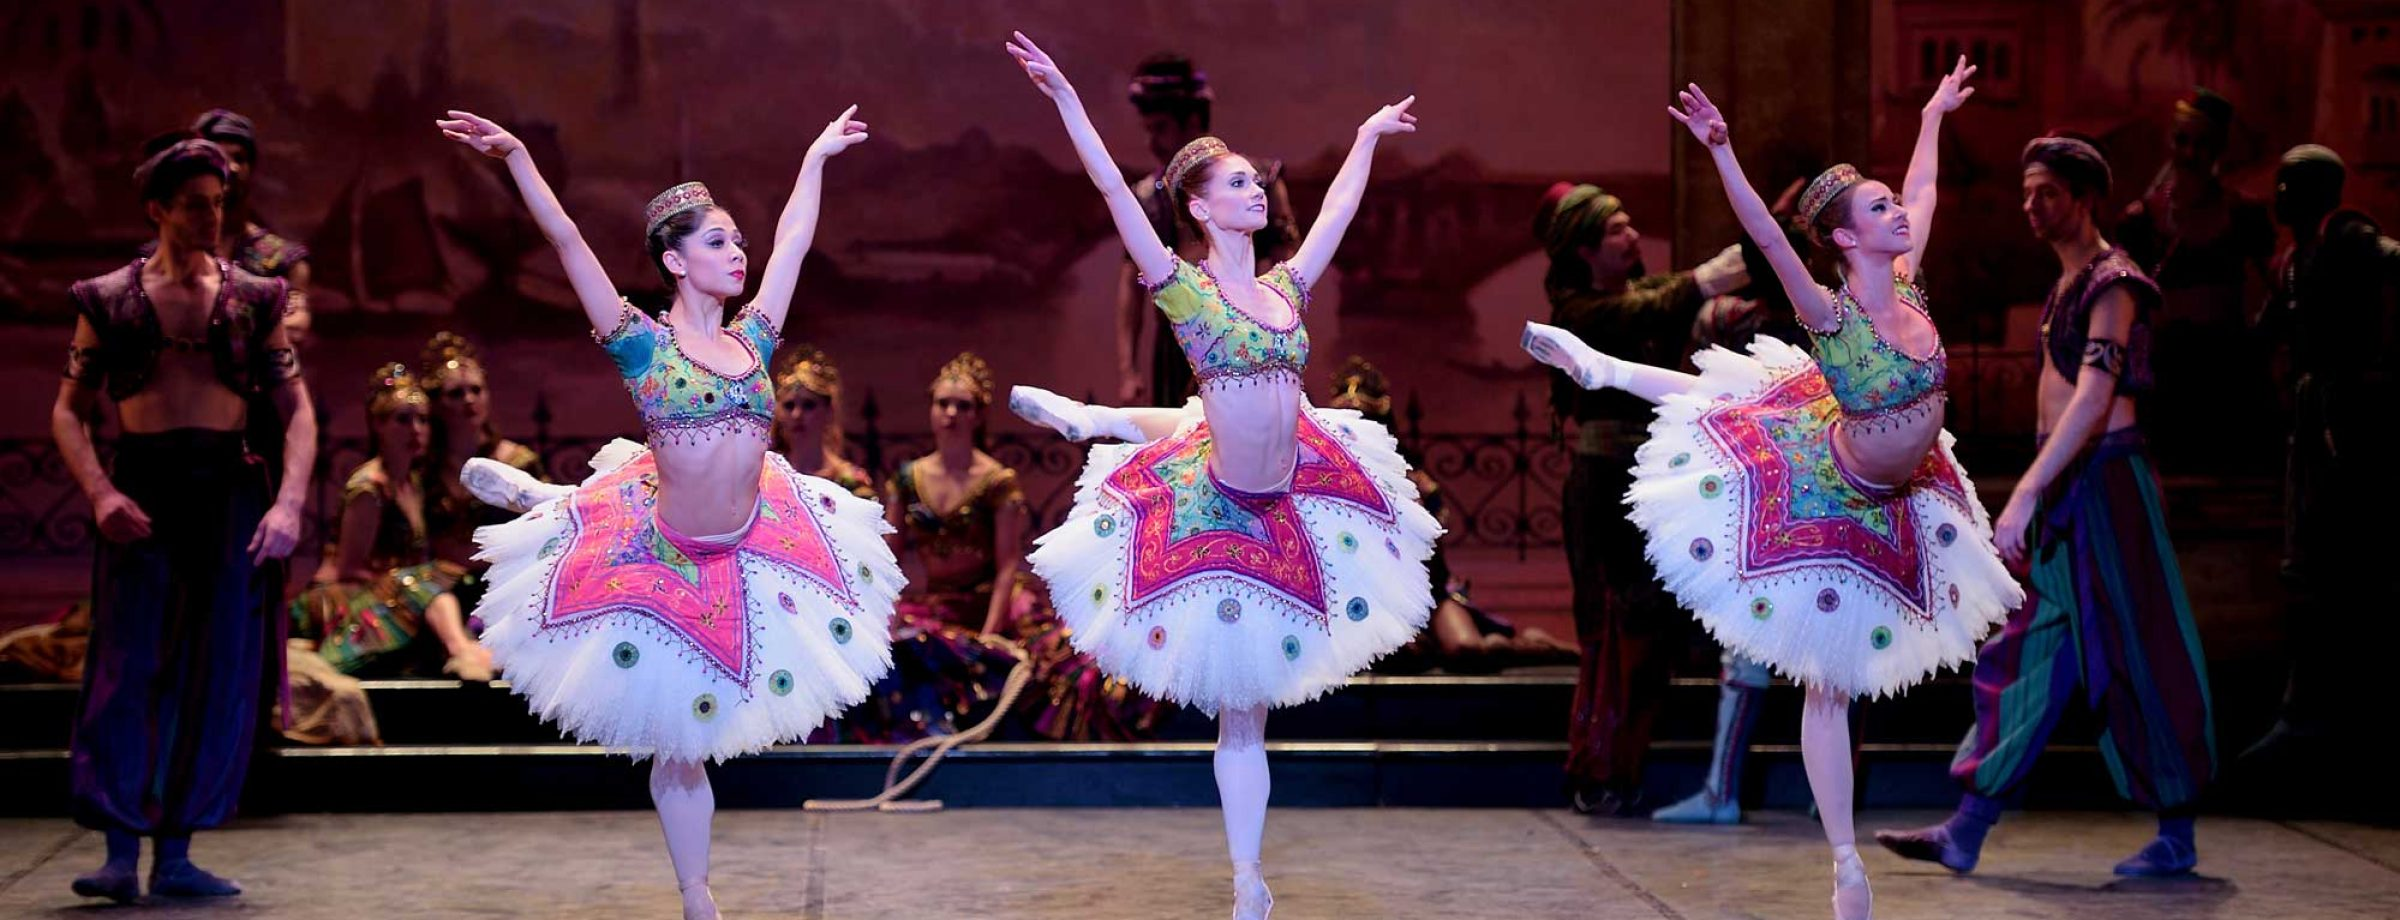 Crystal-Costa,-Alison-McWhinney,-and-Isabelle-Brouwers-in-Le-Corsaire-(c)-Laurent-Liotardo